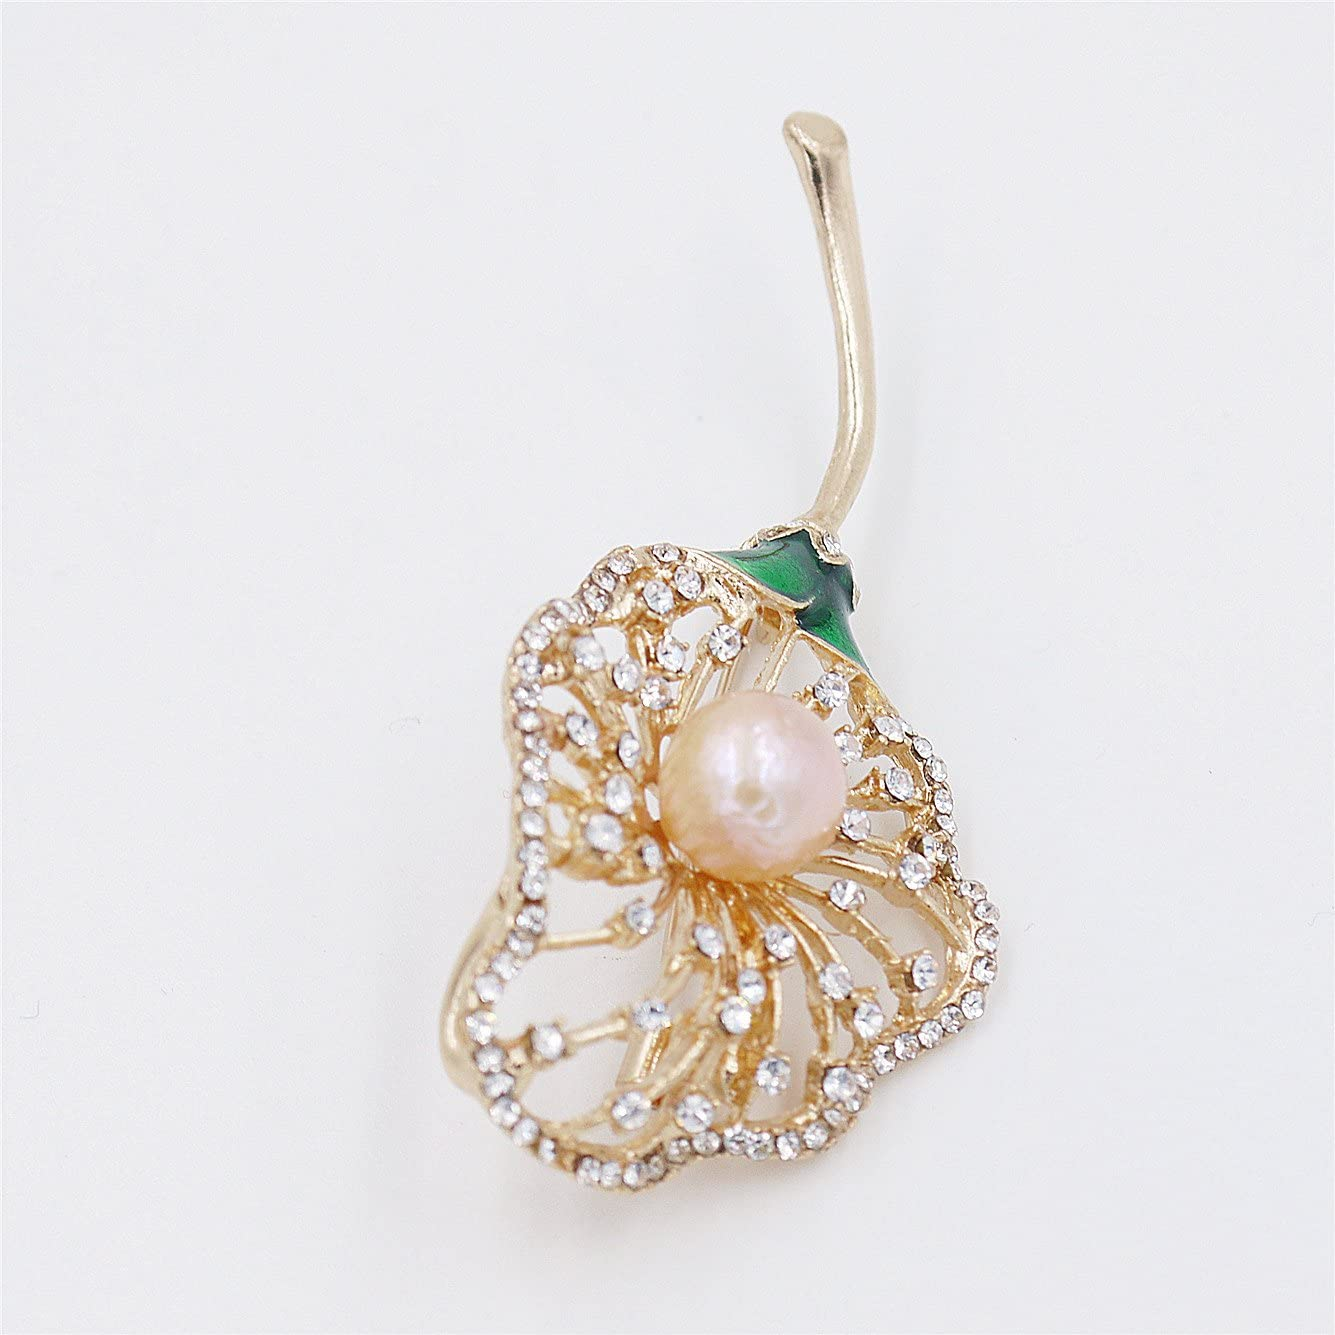 Lee Lee 【LeeLee】 C402Z-Baroque Pearl Dandelion Gold Plated Brooch Mothers Day Birthday Gift Jewelry